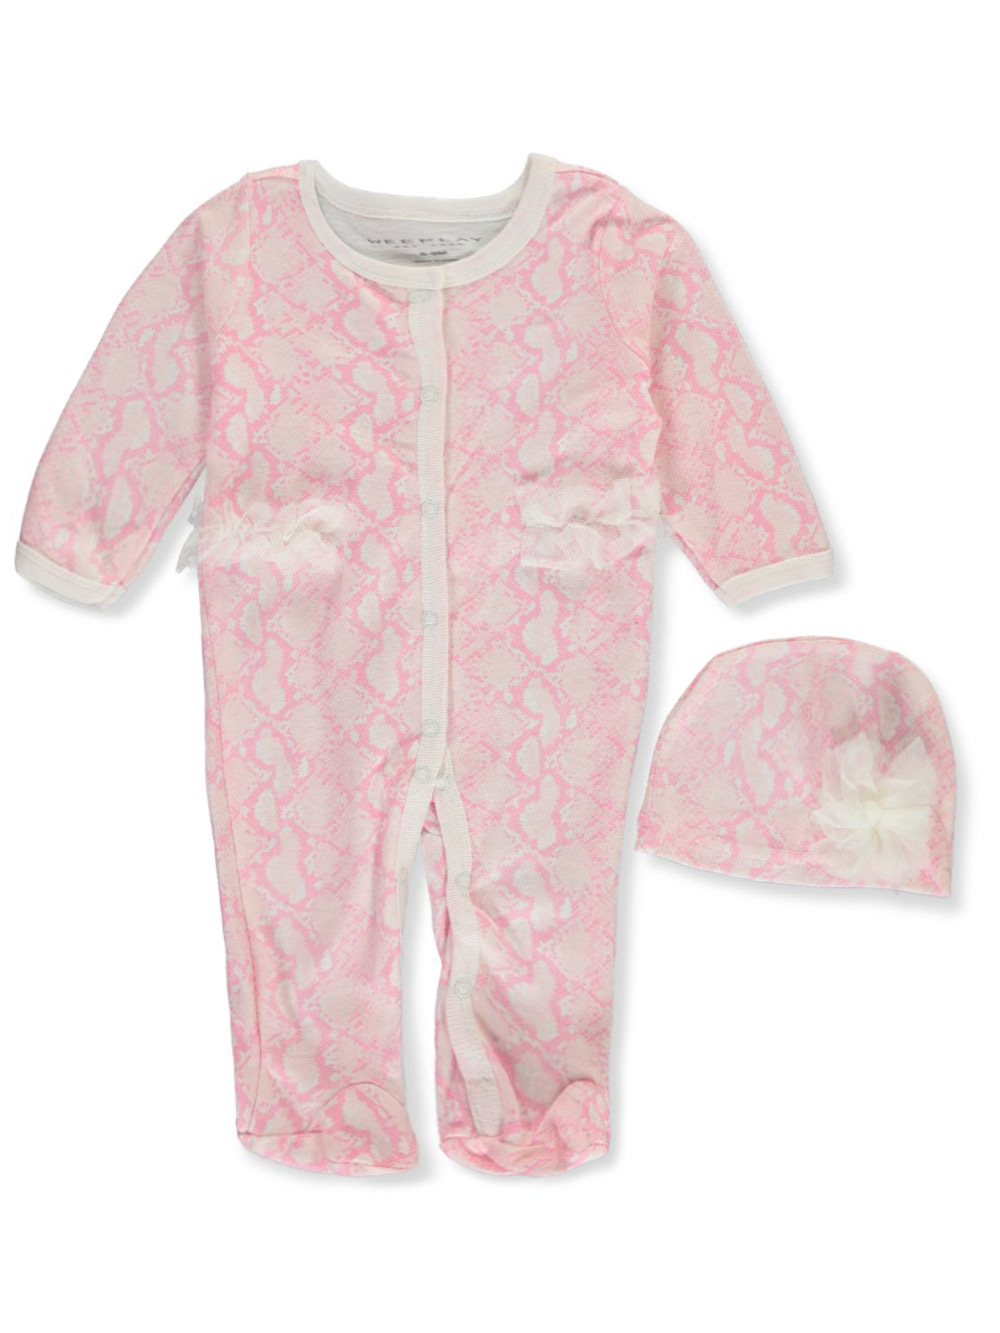 Coveralls 2-Piece Layette Set